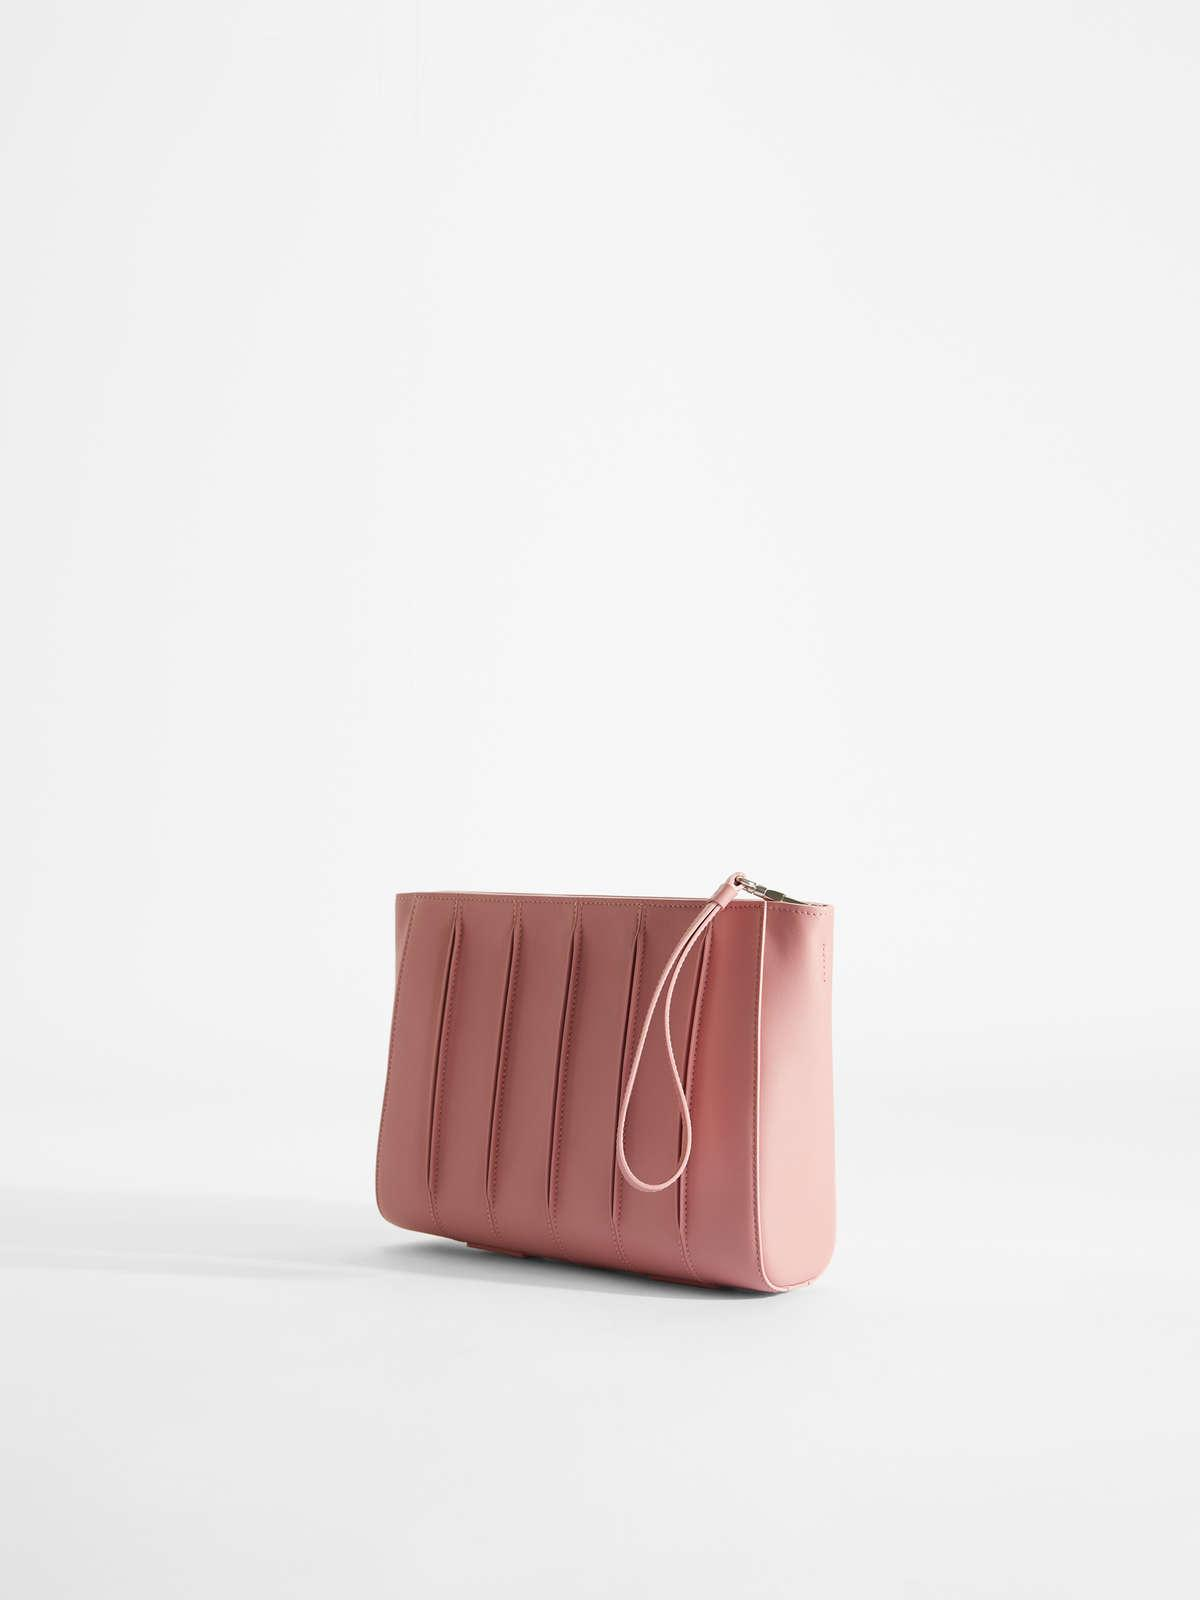 Womens Max Mara Clutch Bags | Whitney Bag Clutch In Smooth Leather Antique Rose